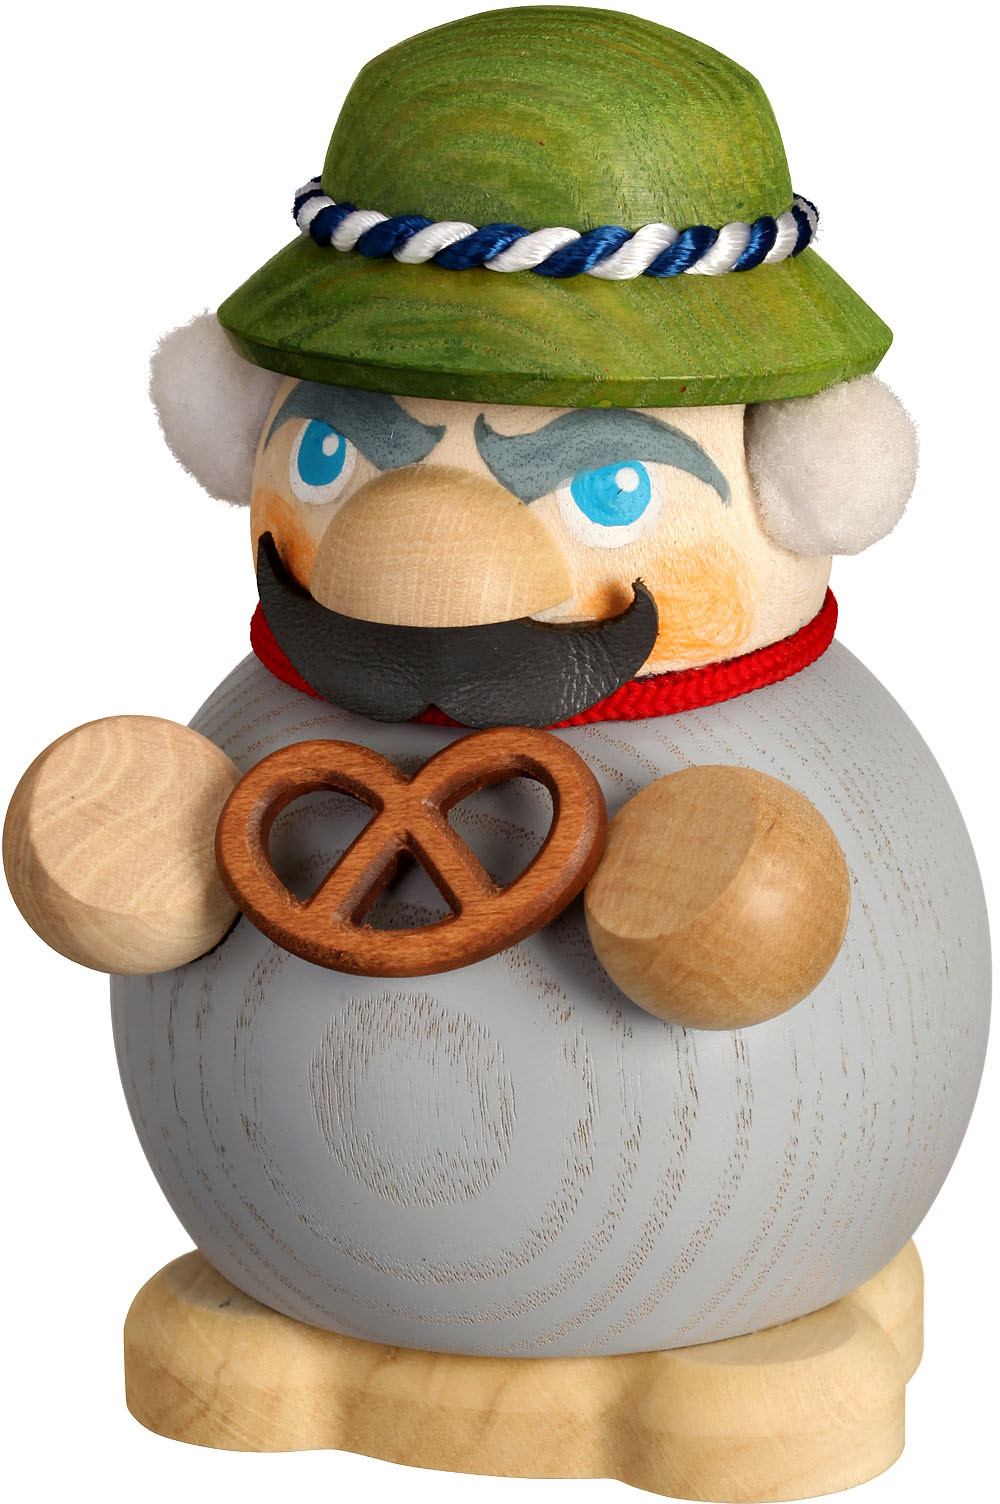 Ball-shaped Nutcracker Bavarian